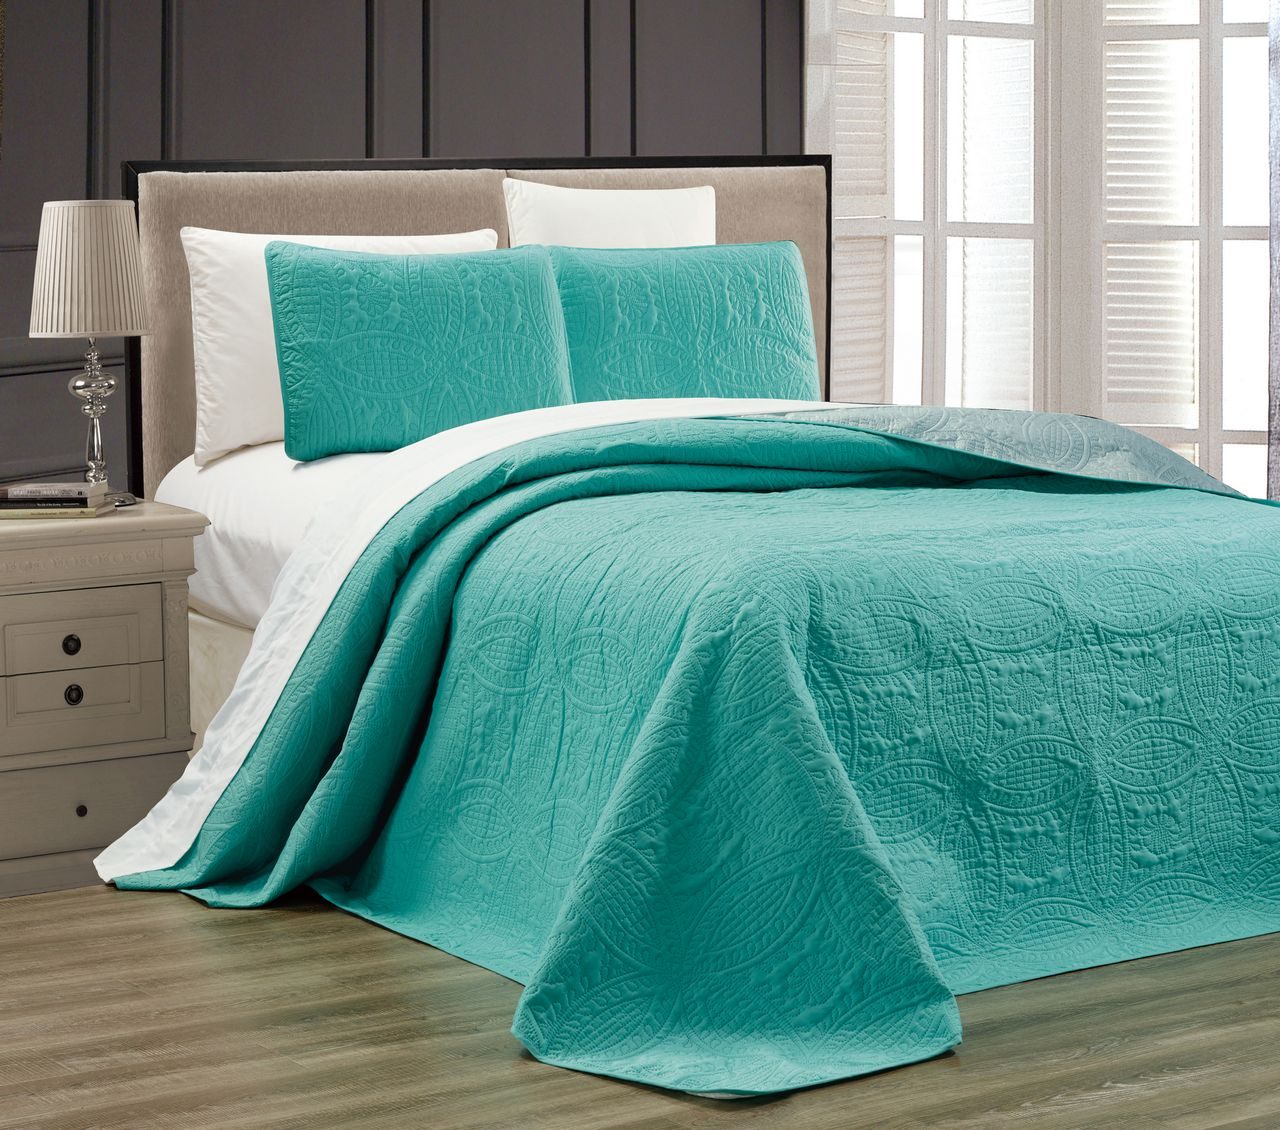 Discover Bedding Comforters & Sets on fattfawolfke.ml at a great price. Our Bedding category offers a great selection of Bedding Comforters & Sets and more. Free Shipping on Prime eligible orders.